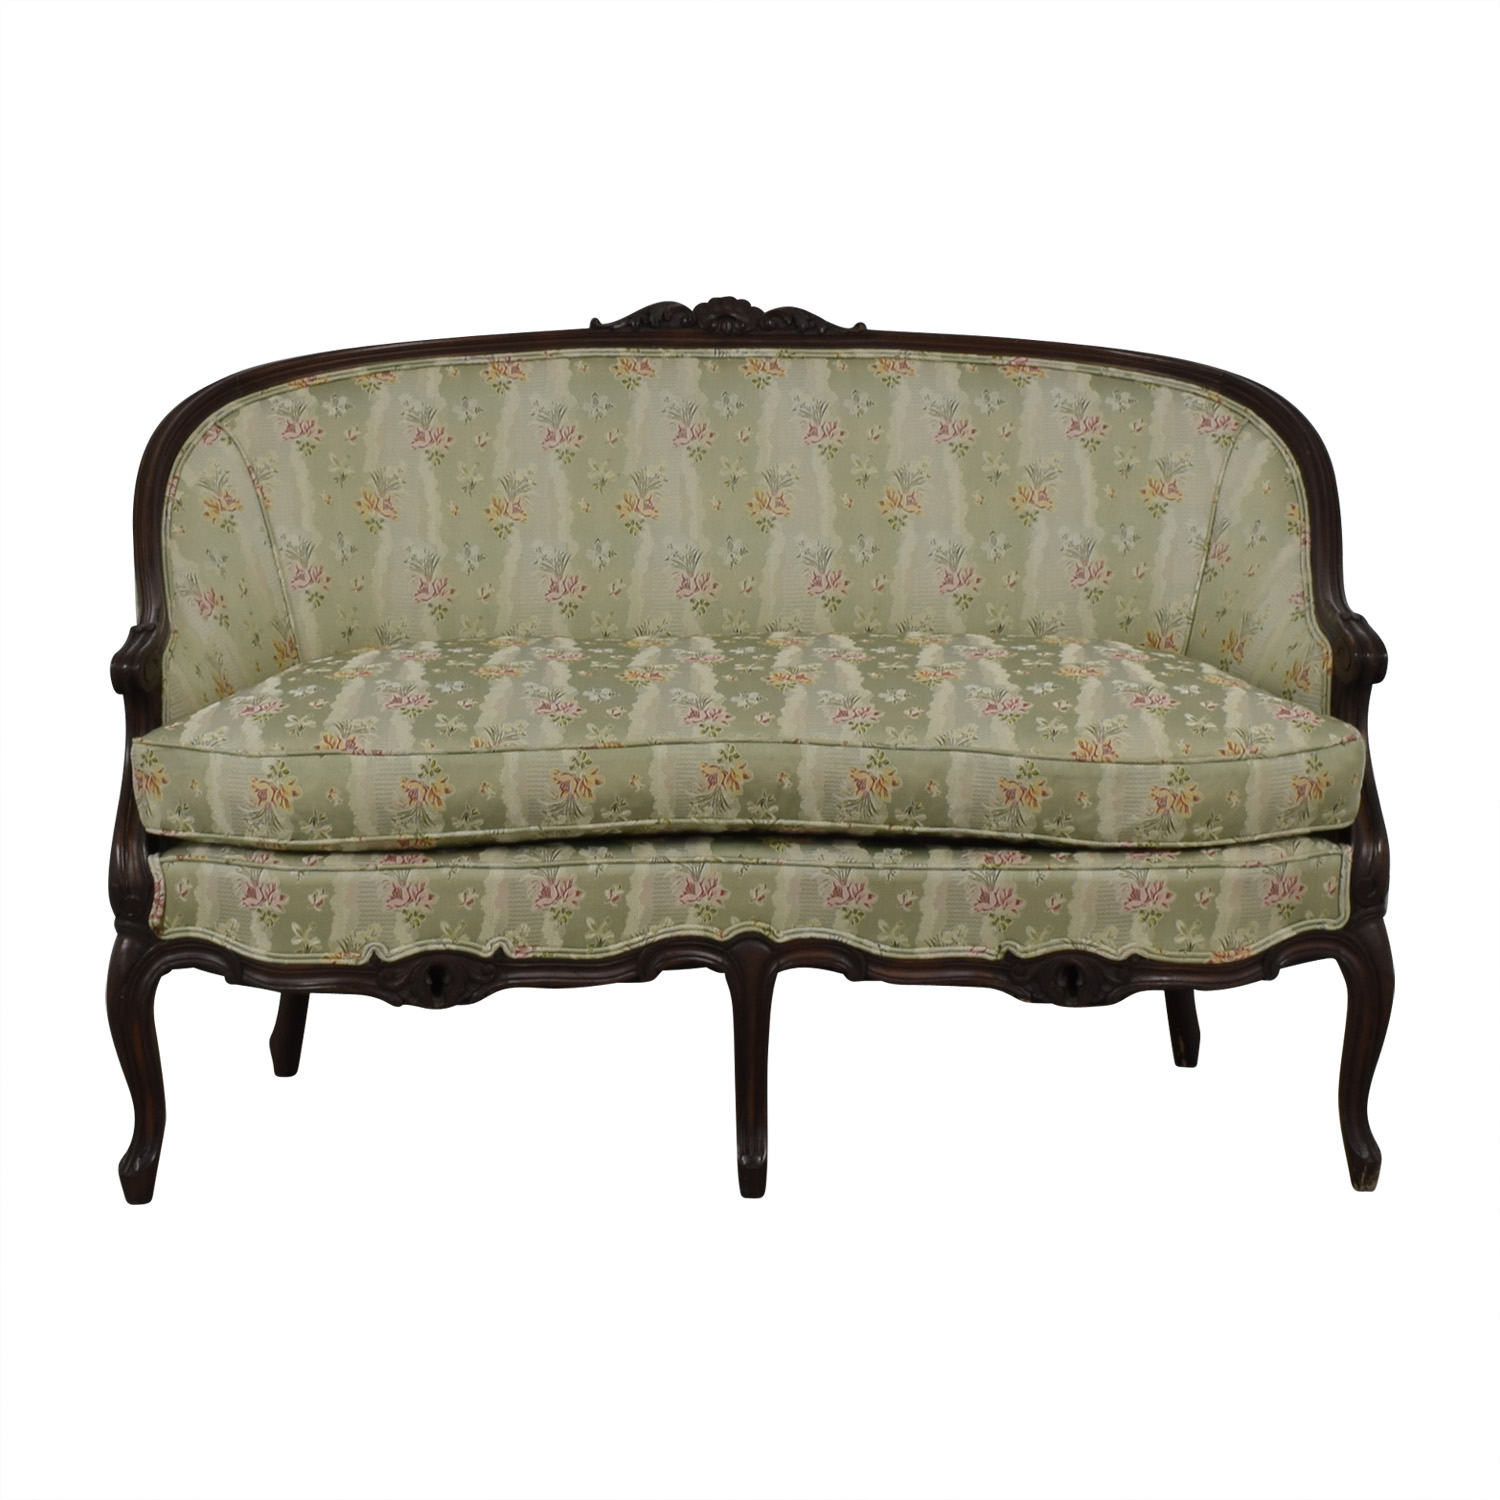 Antique French Floral Upholstered Single Cushion Loveseat second hand